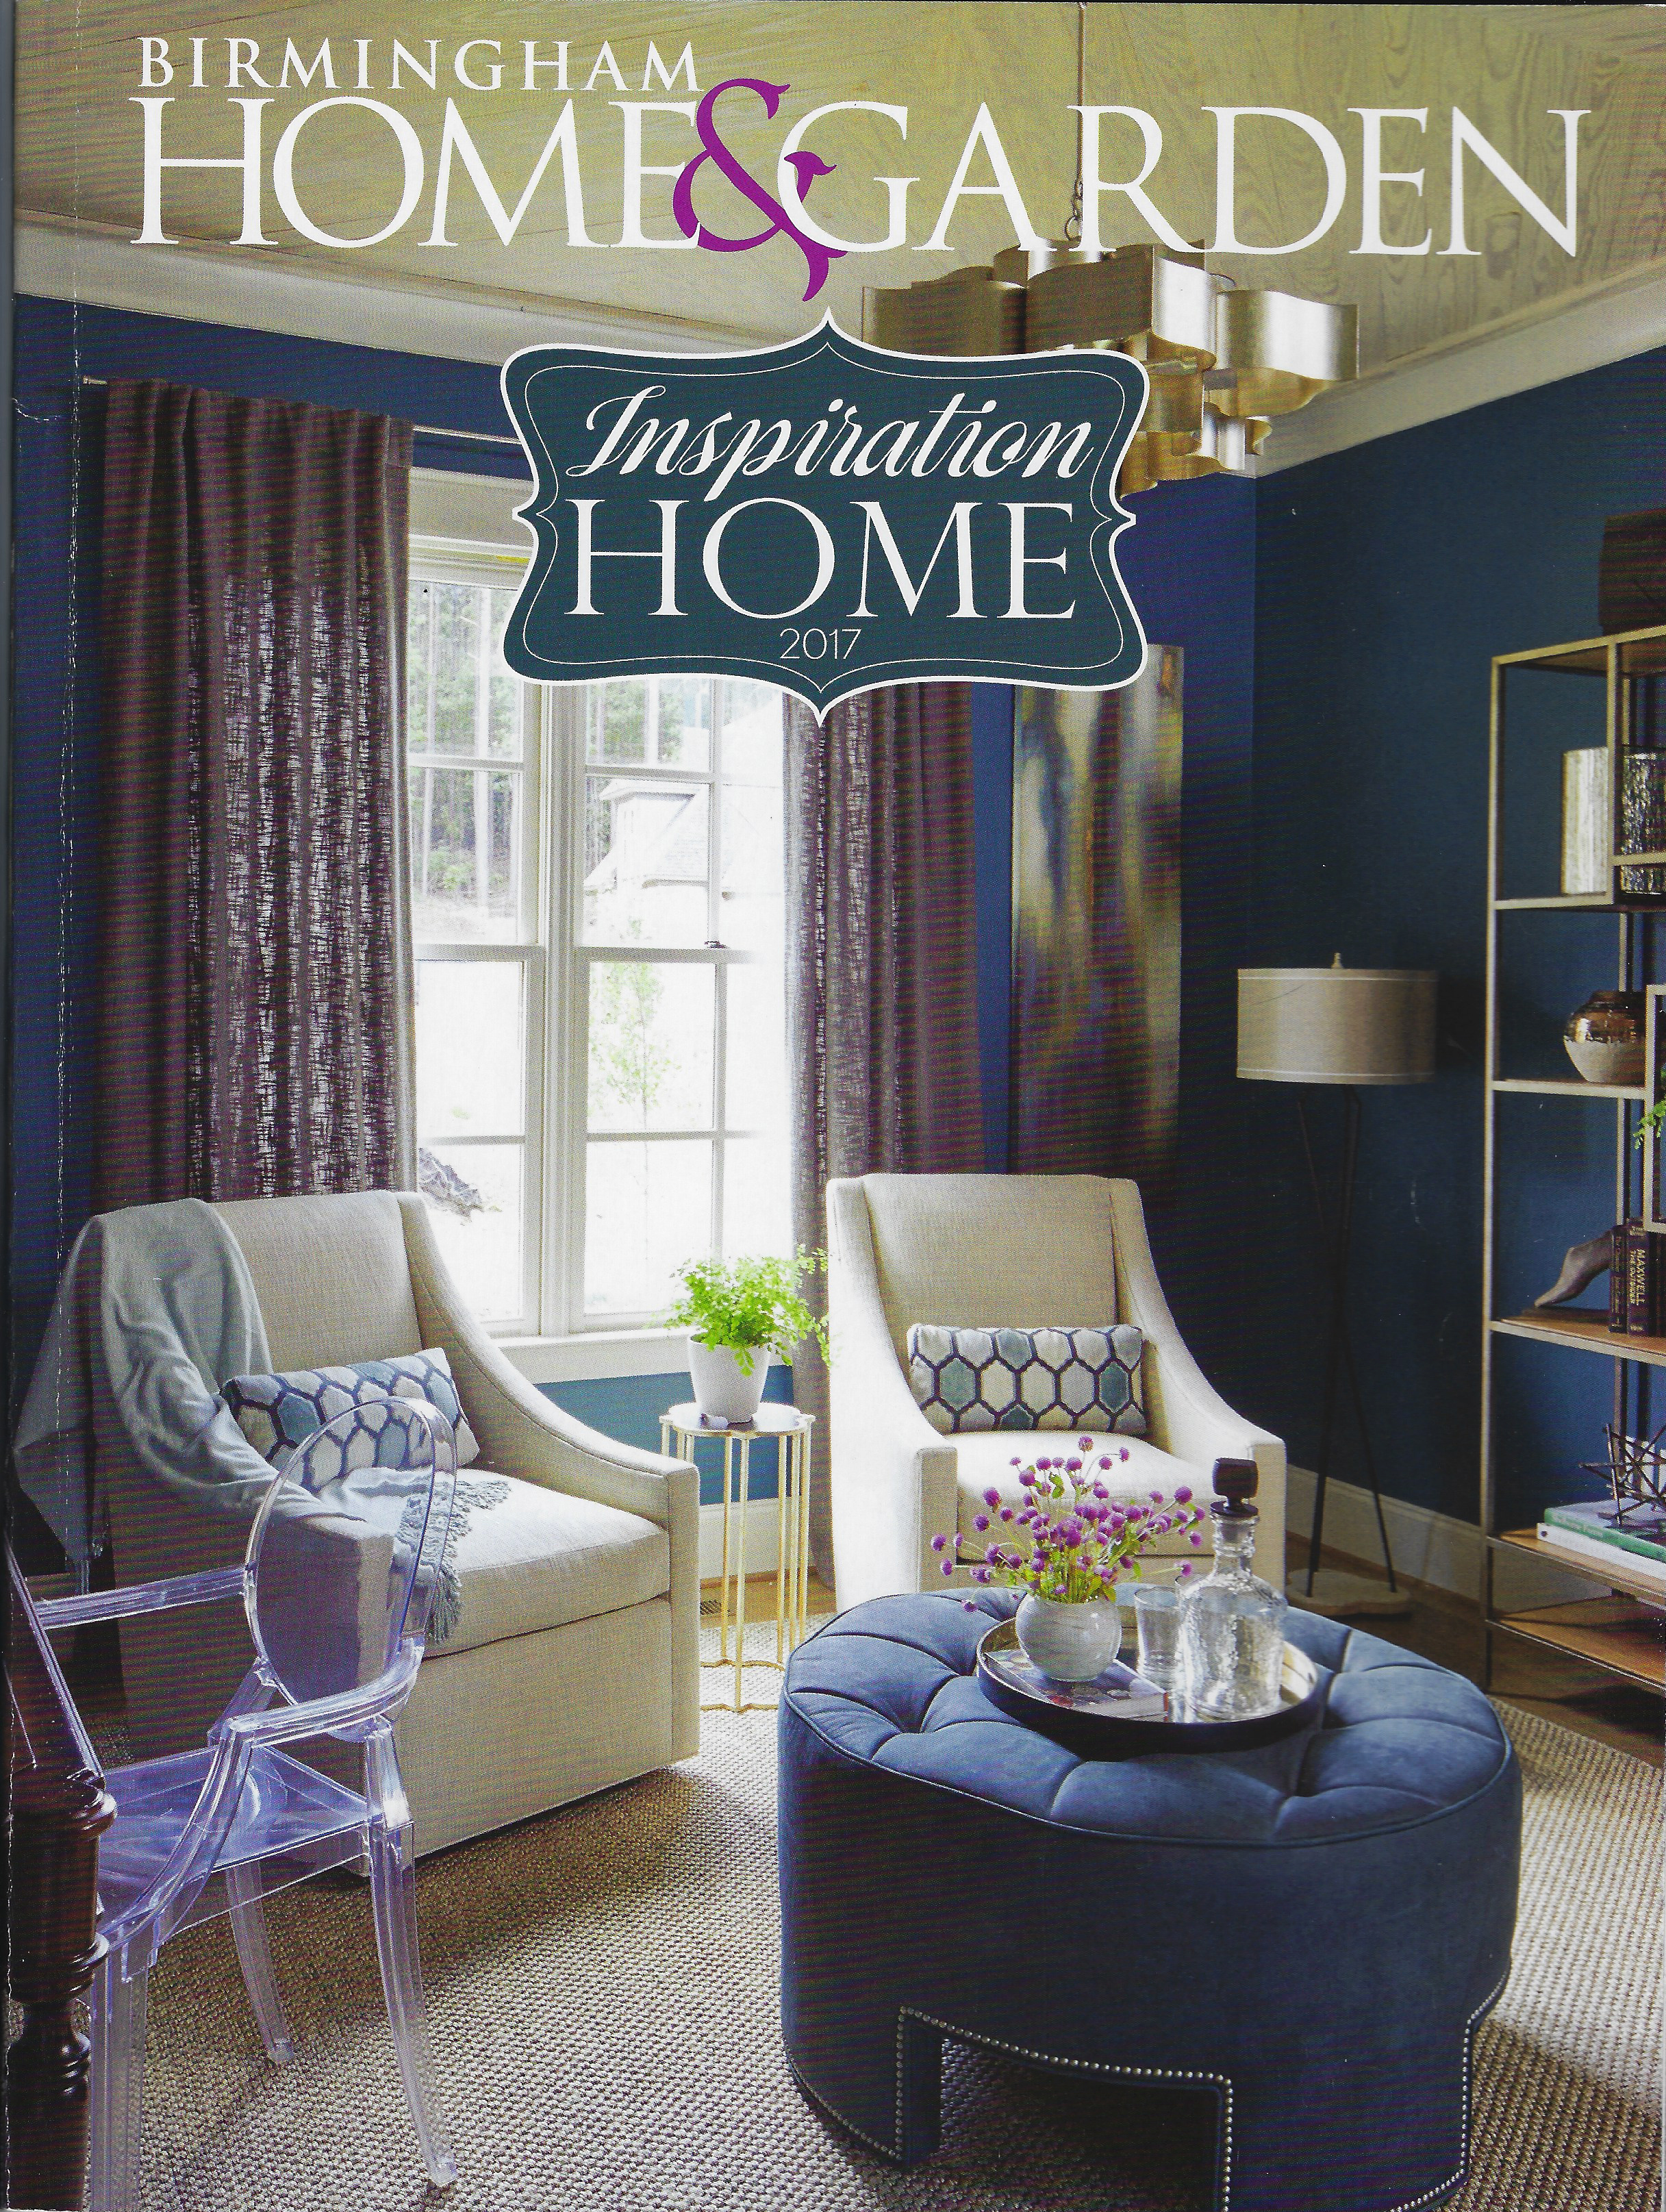 BHG Inspiration Home 18 Cover.jpg